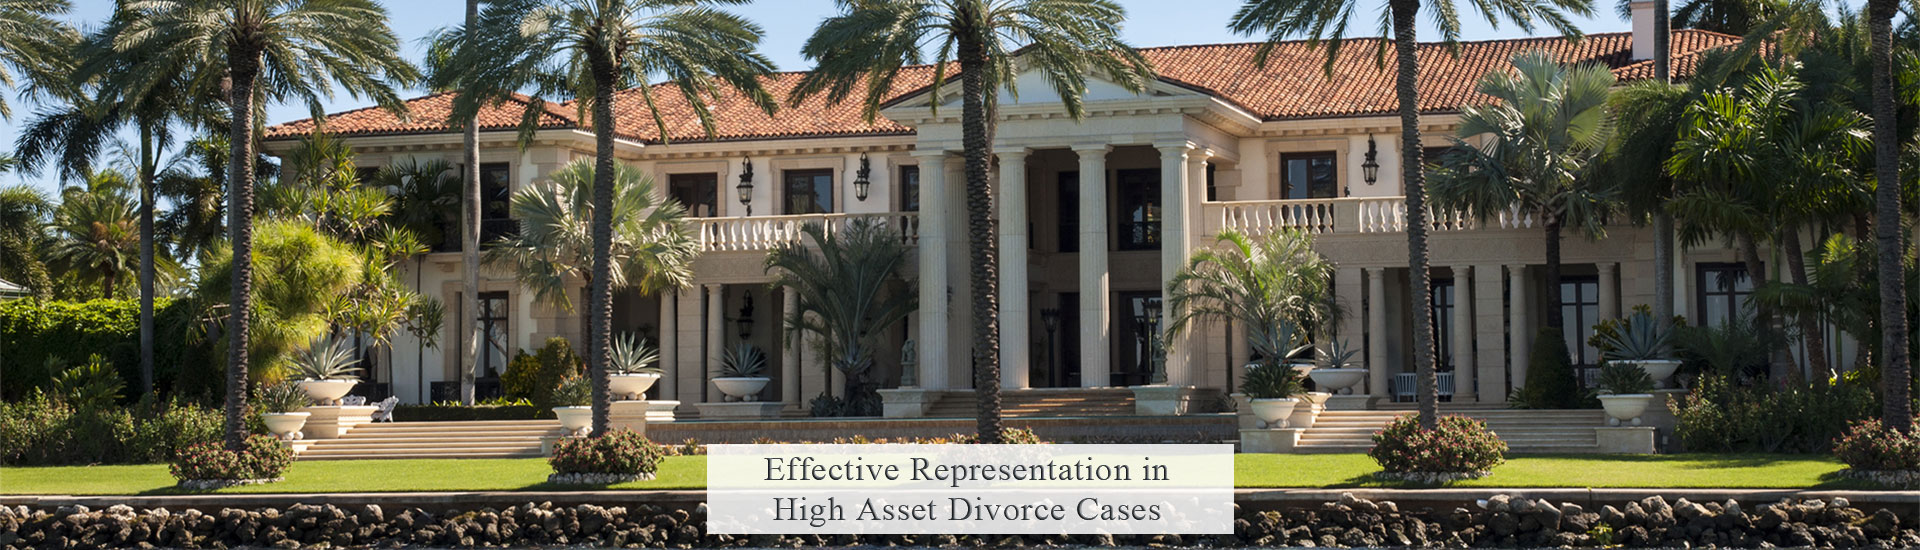 South Floirda High Asset Divorce Lawyer